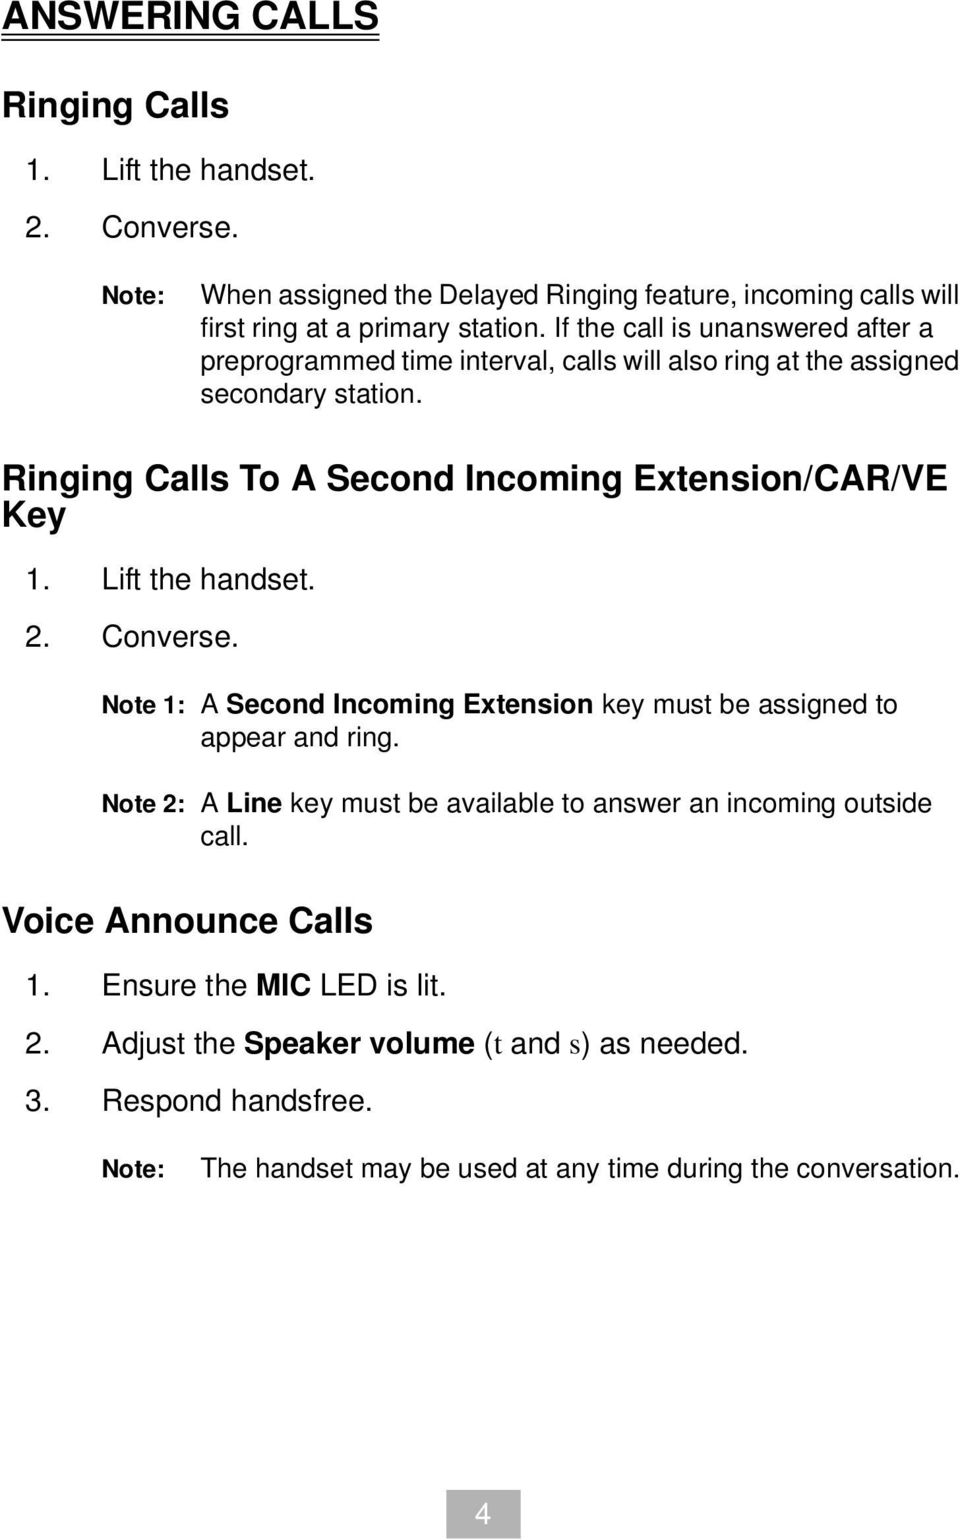 Ringing Calls To A Second Incoming Extension/CAR/VE Key 1. Lift the handset. 2. Converse. Note 1: A Second Incoming Extension key must be assigned to appear and ring.